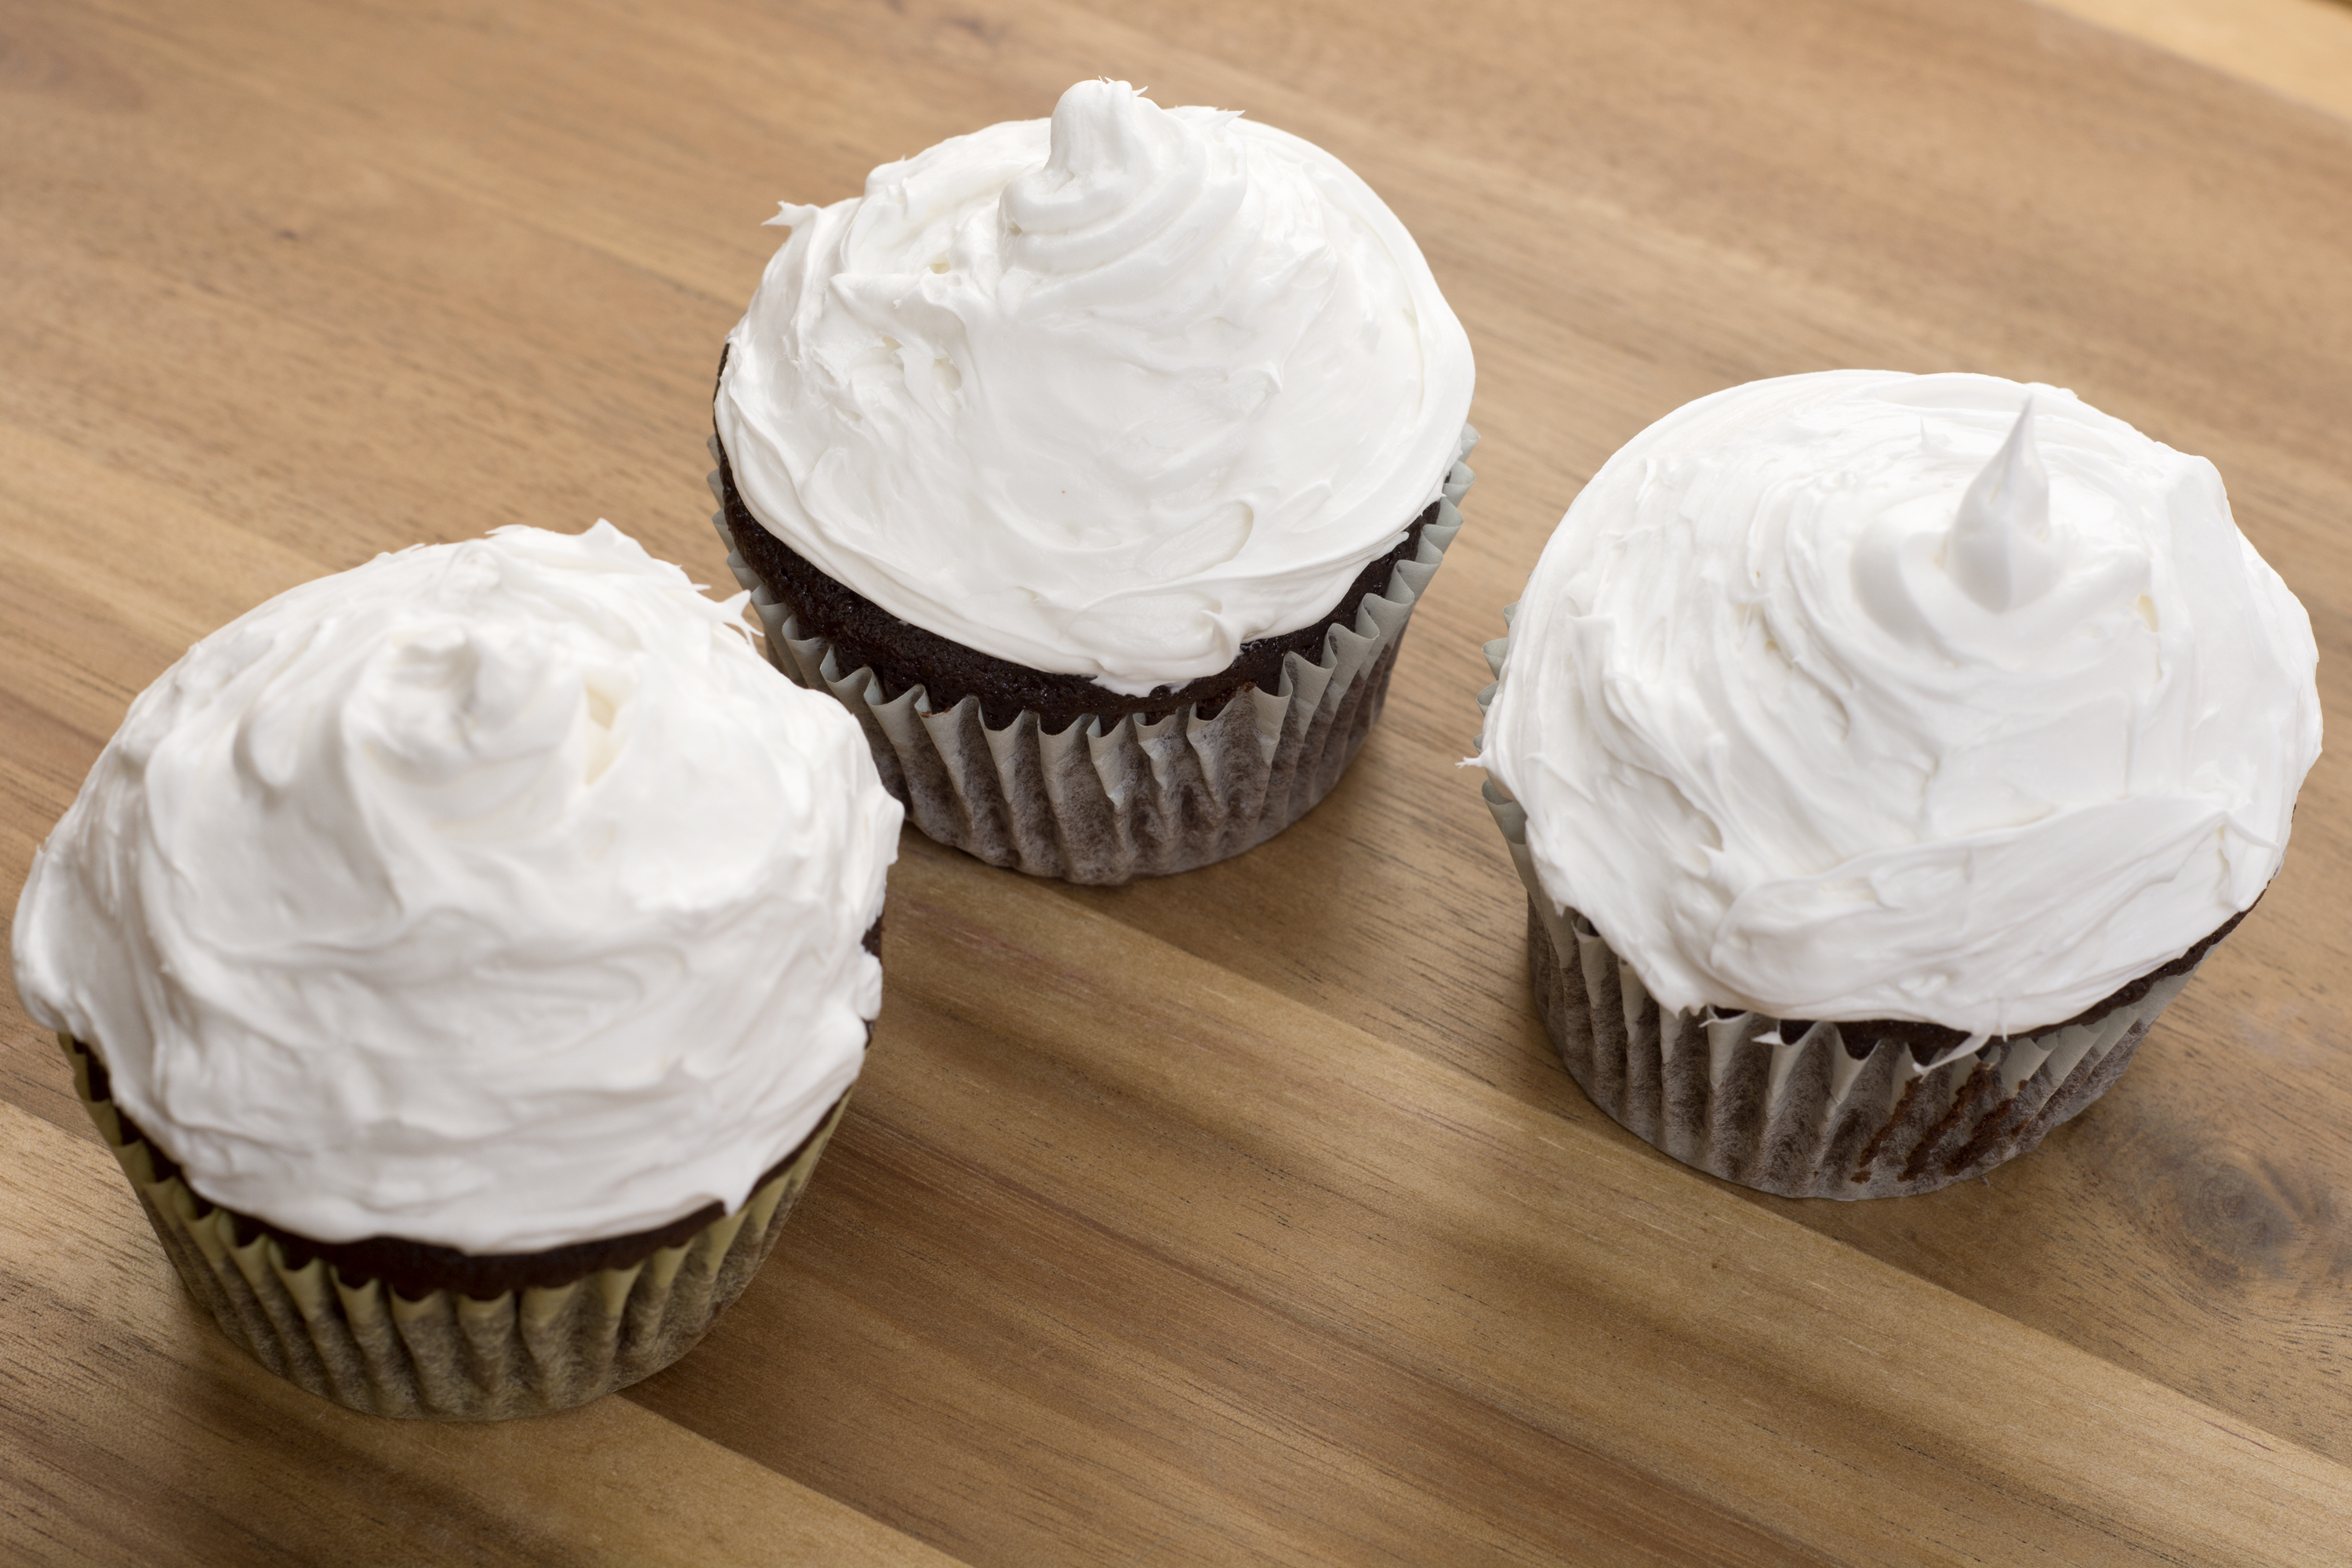 Cake Icing Recipe For Decorating: How To Make Whipped Frosting For Cake Decorating